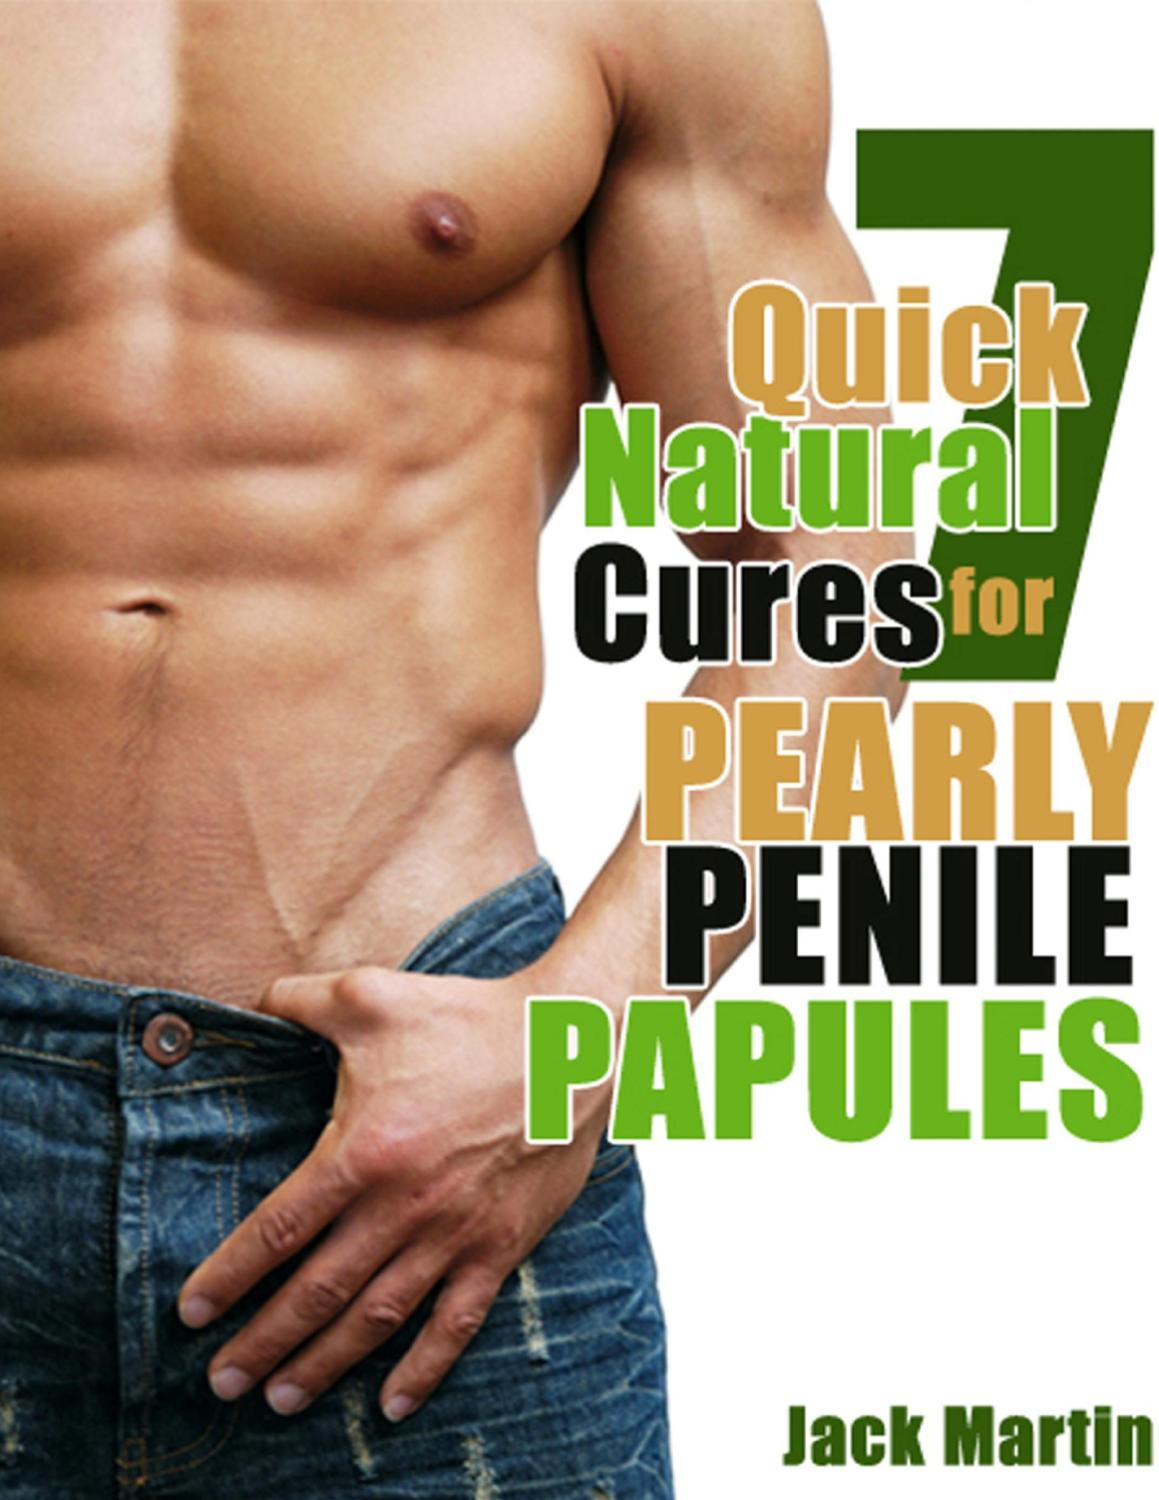 Penile papules away will go Pearly penile